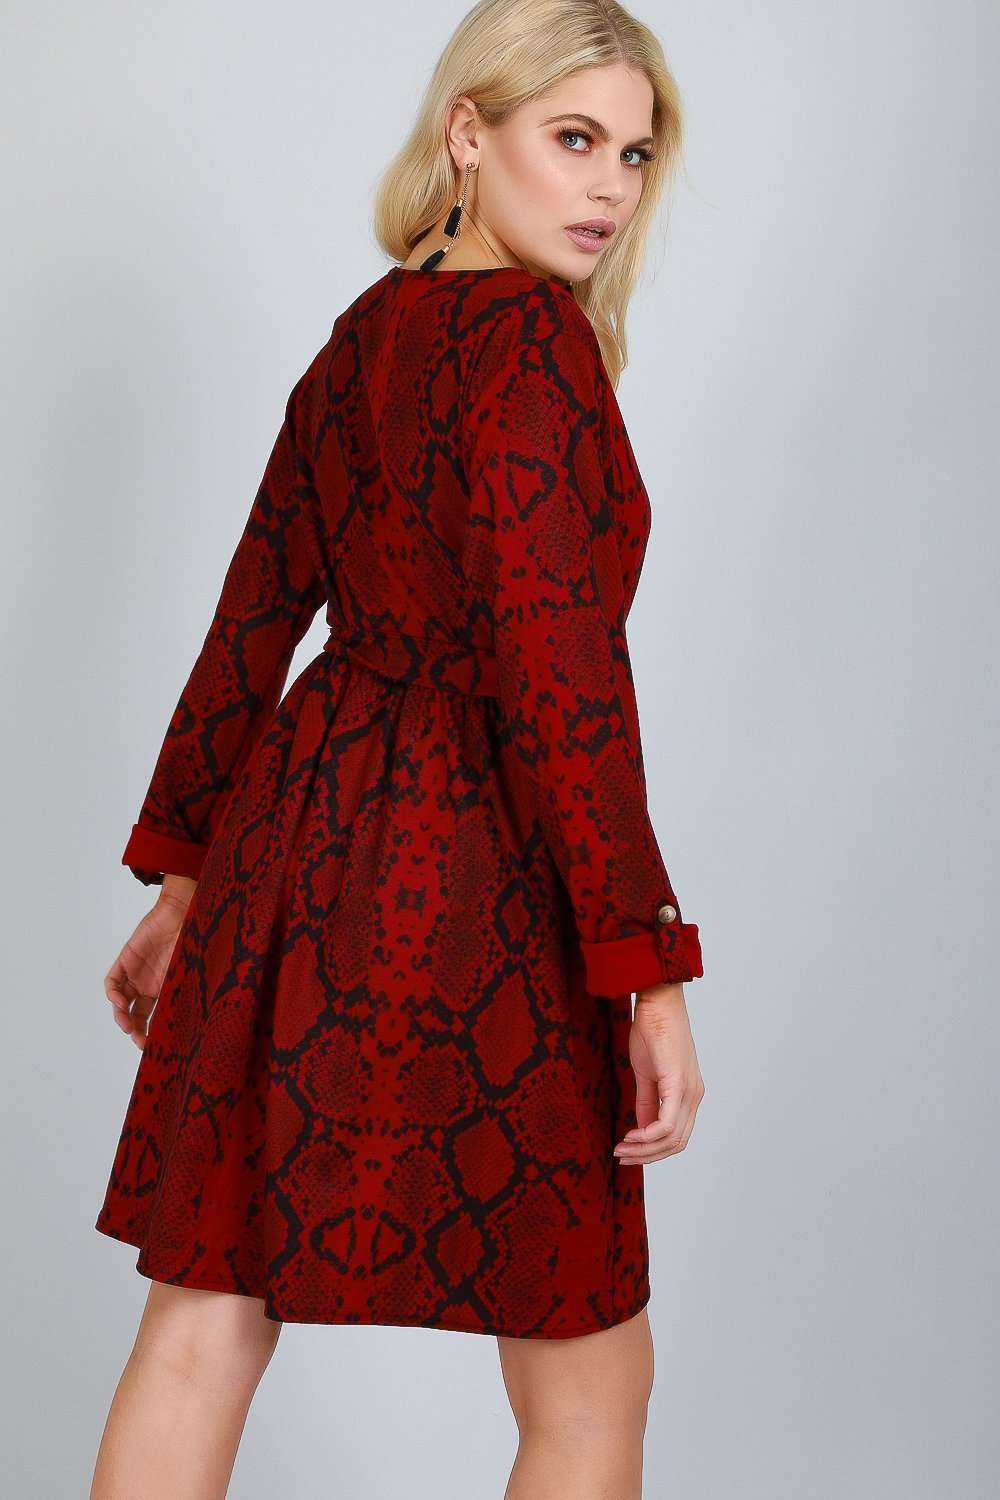 Jess Long Sleeve Snake Print Shift Dress - bejealous-com